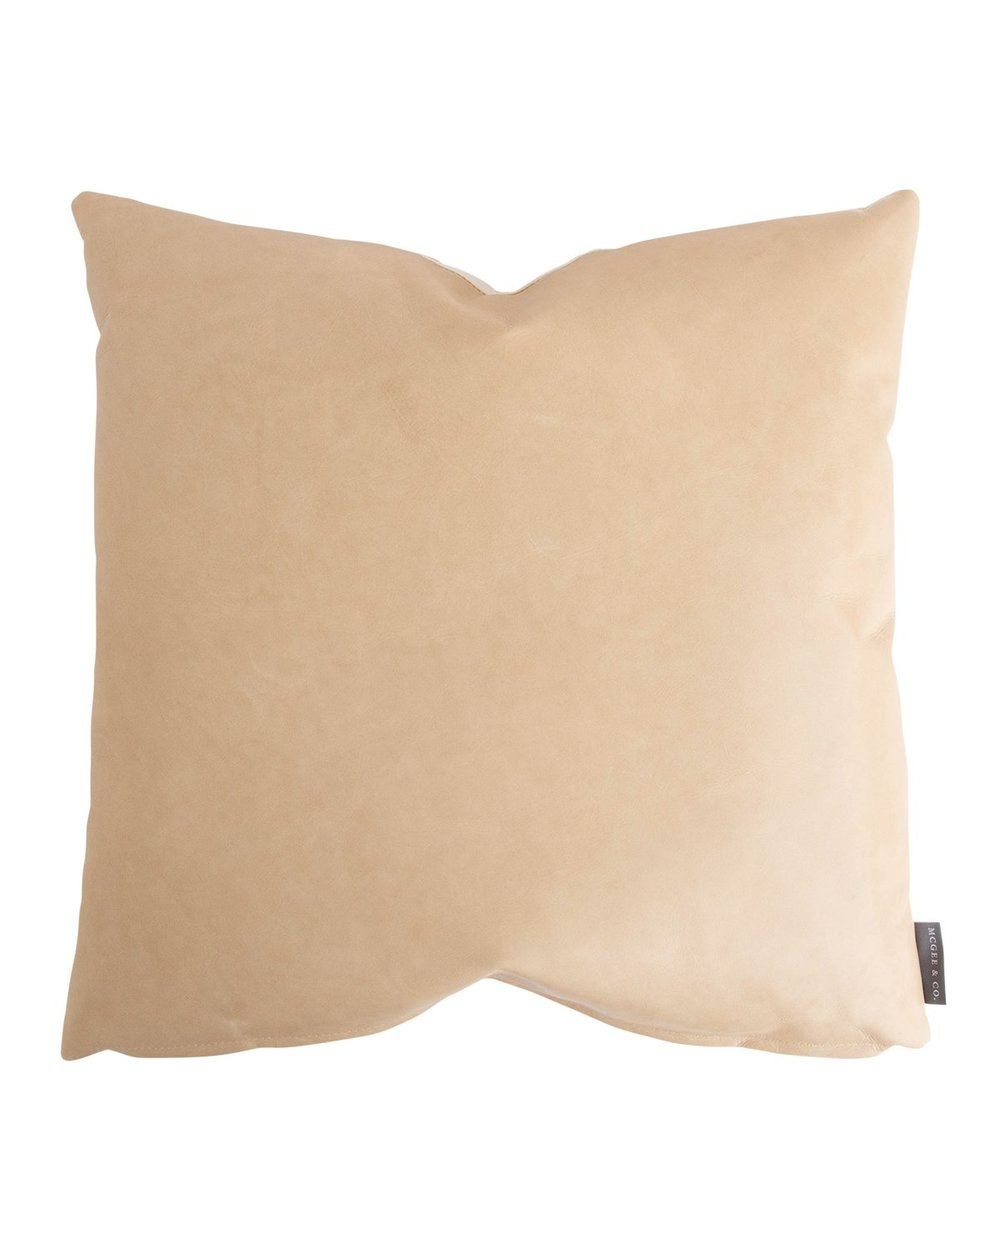 Palomino_Pillow_3.jpg